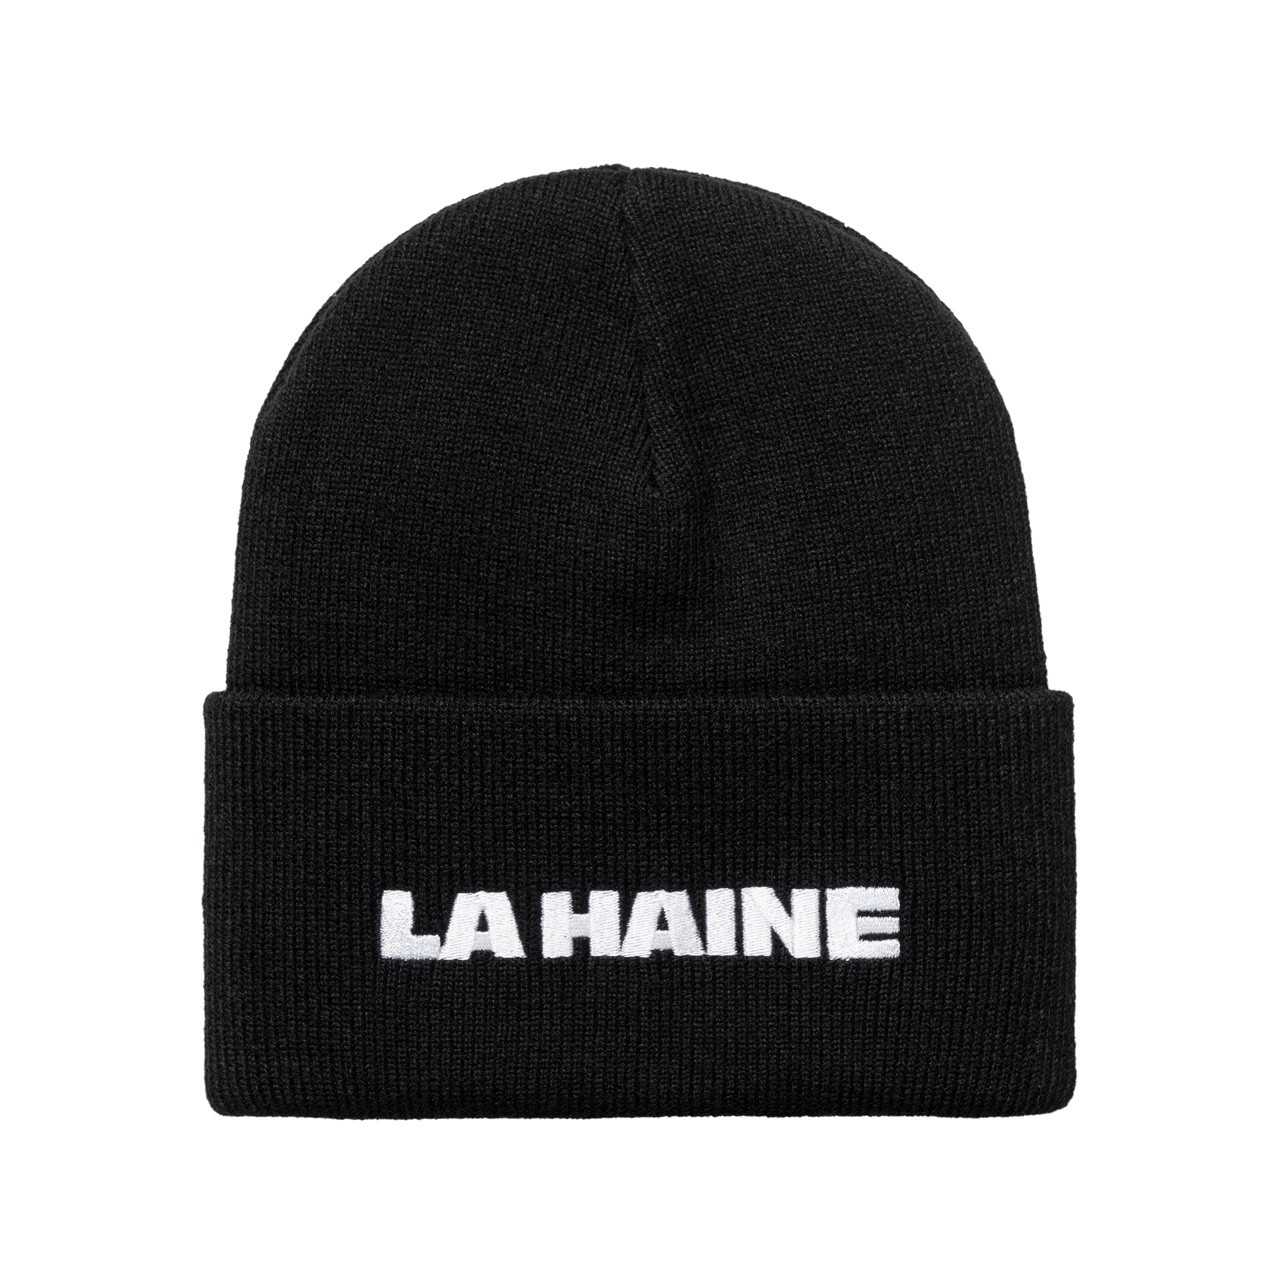 carhartt wip la haine capsule collection release